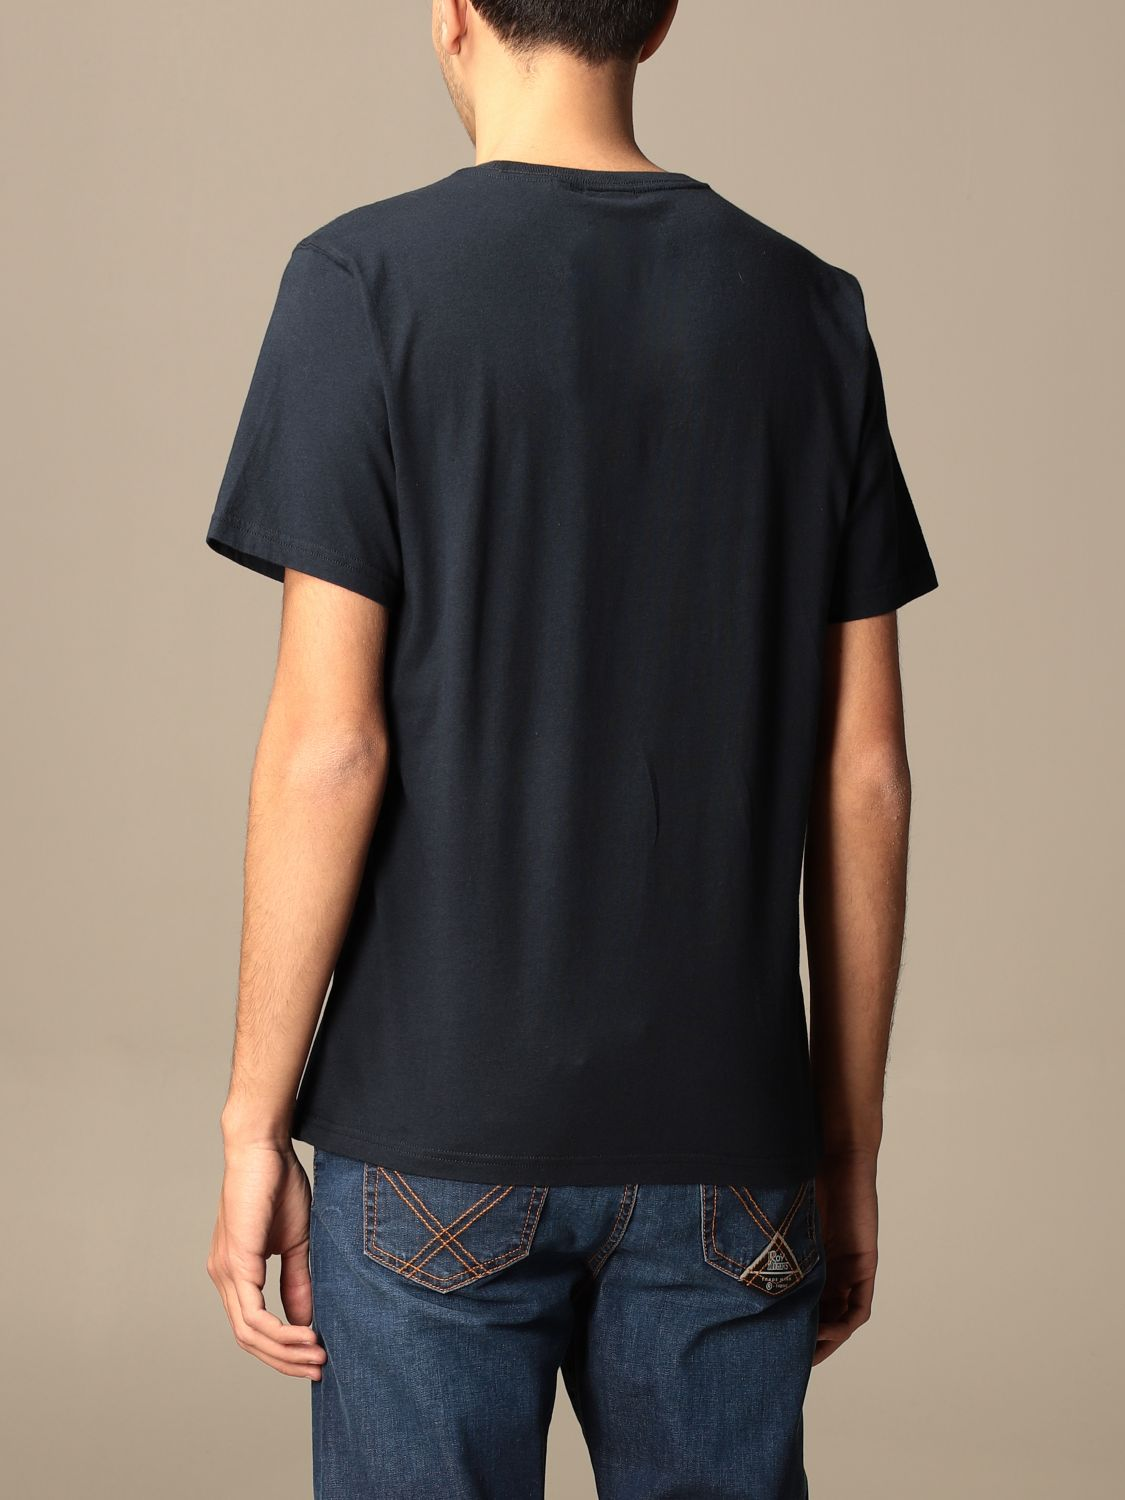 T-shirt Barbour: T-shirt Barbour in cotone con stampa blue navy 2